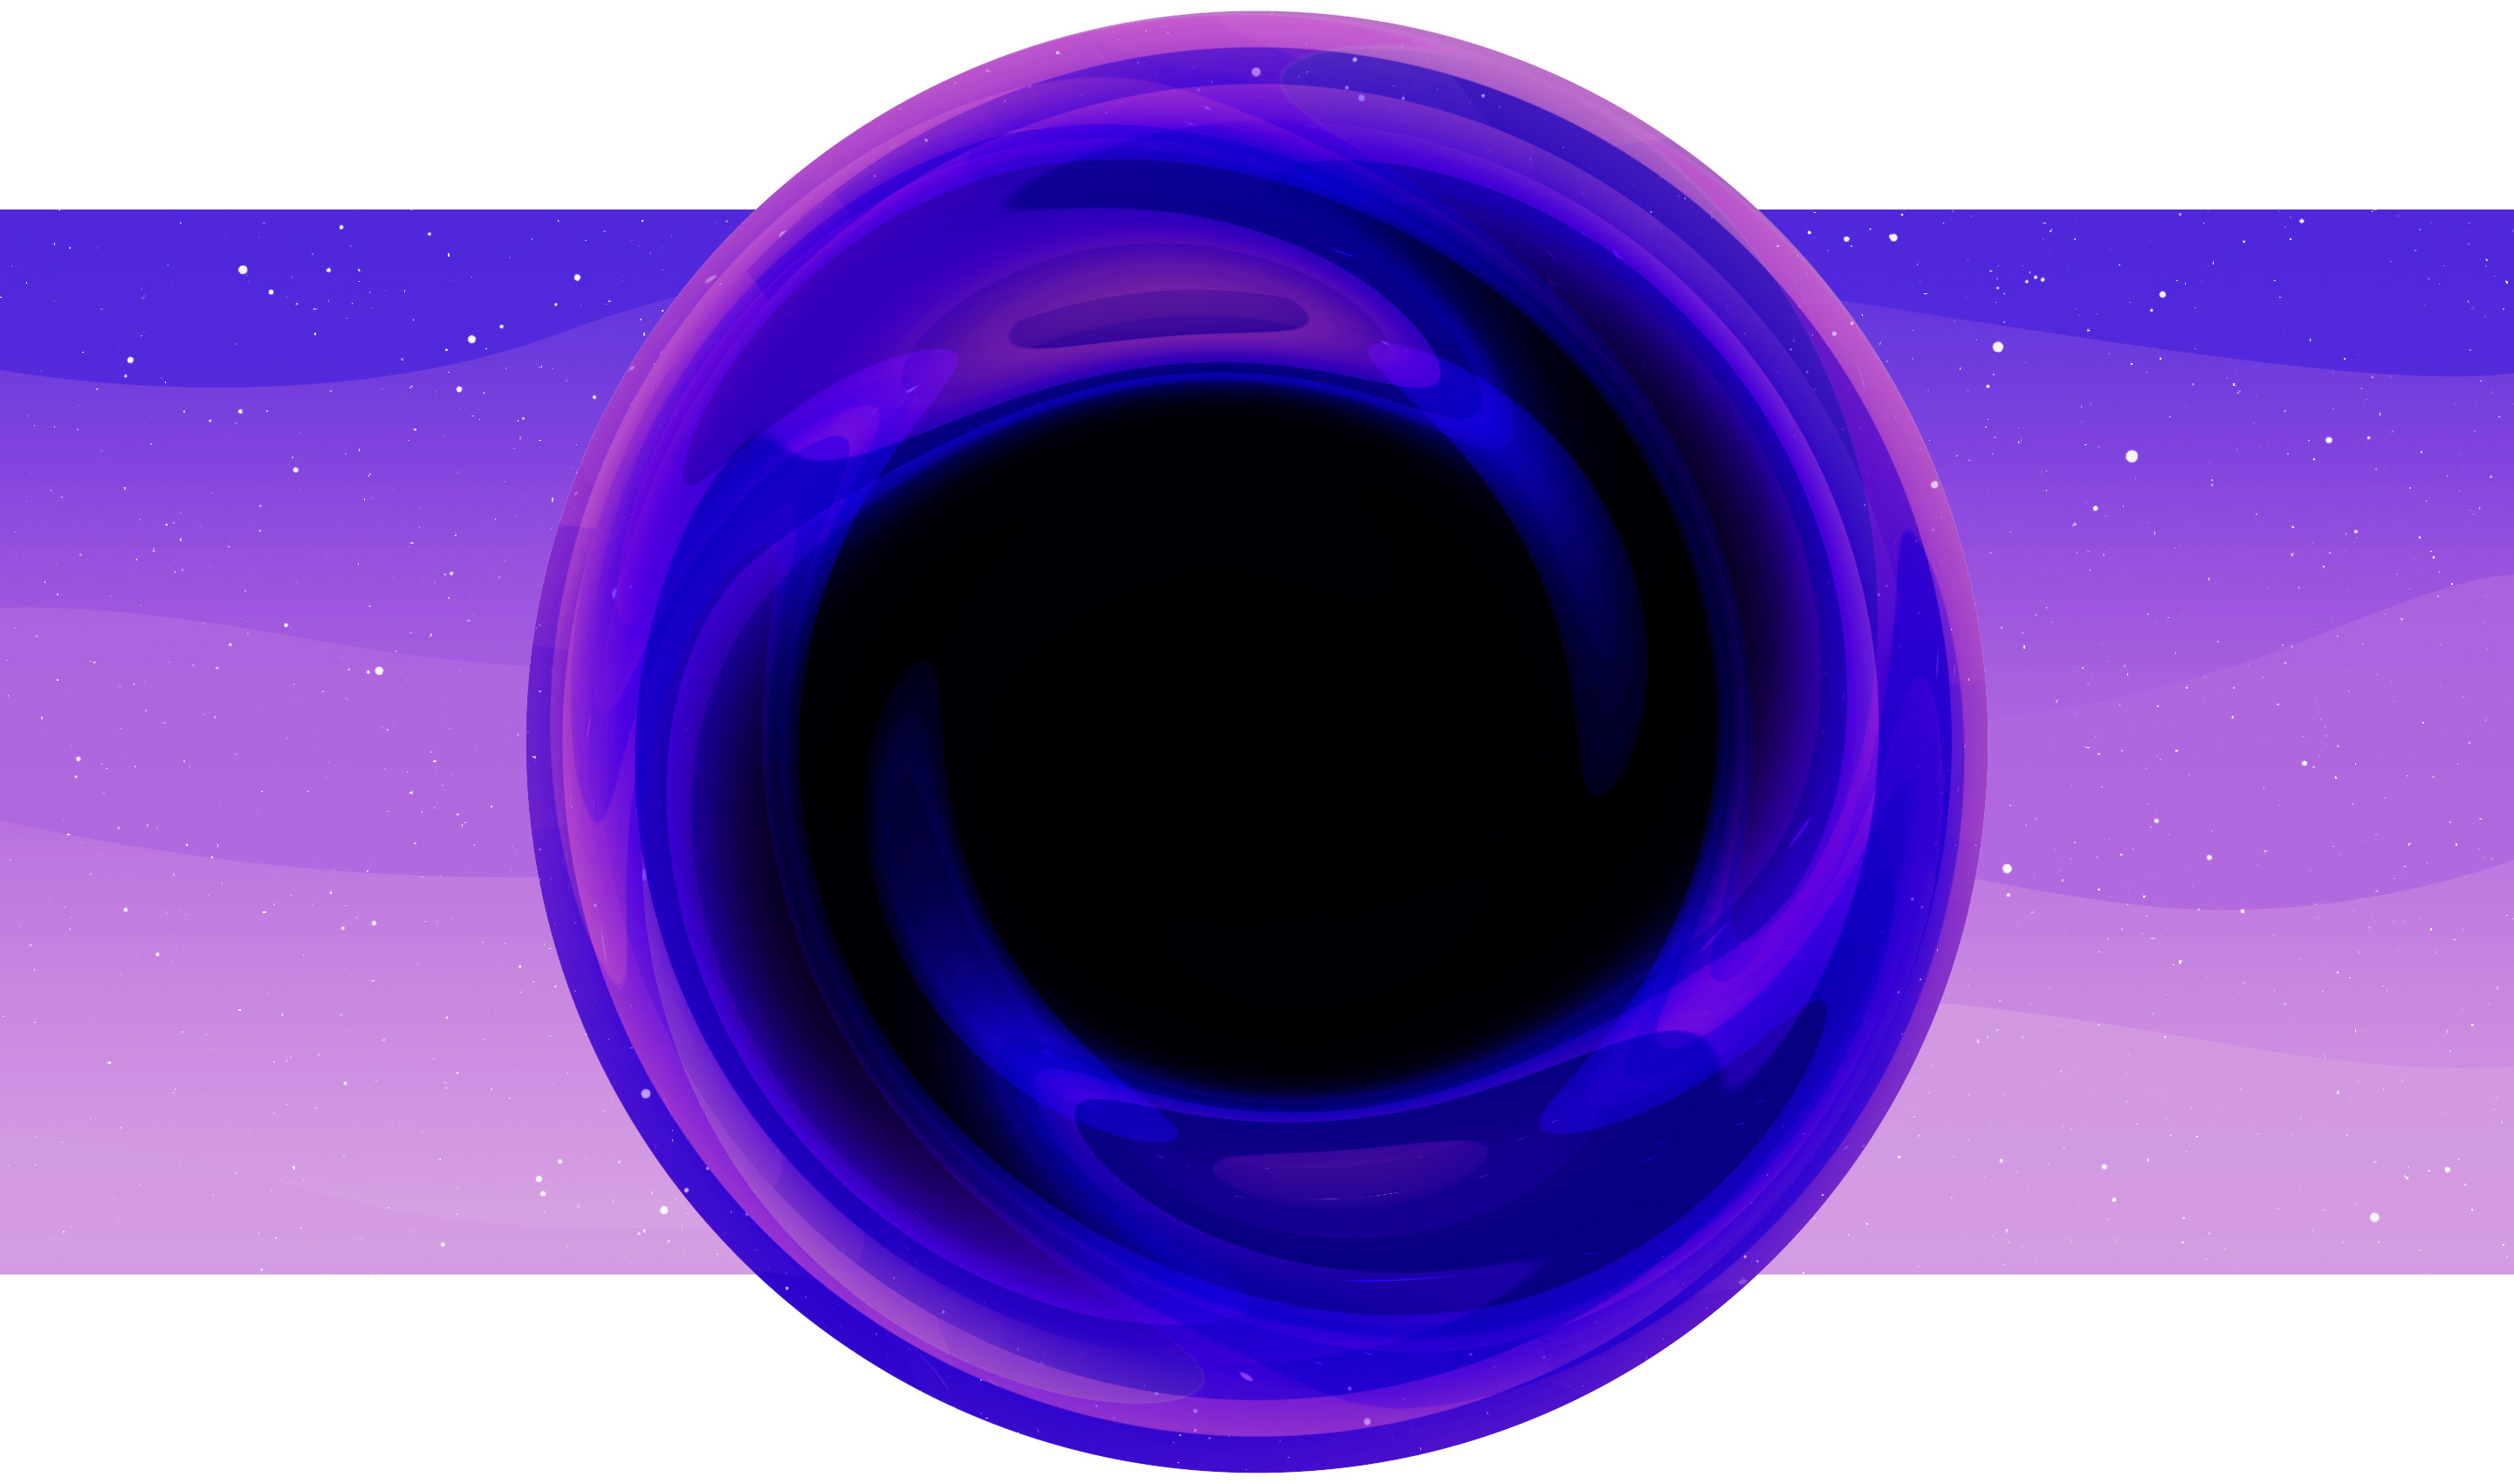 An illustration of an extra-large black hole.